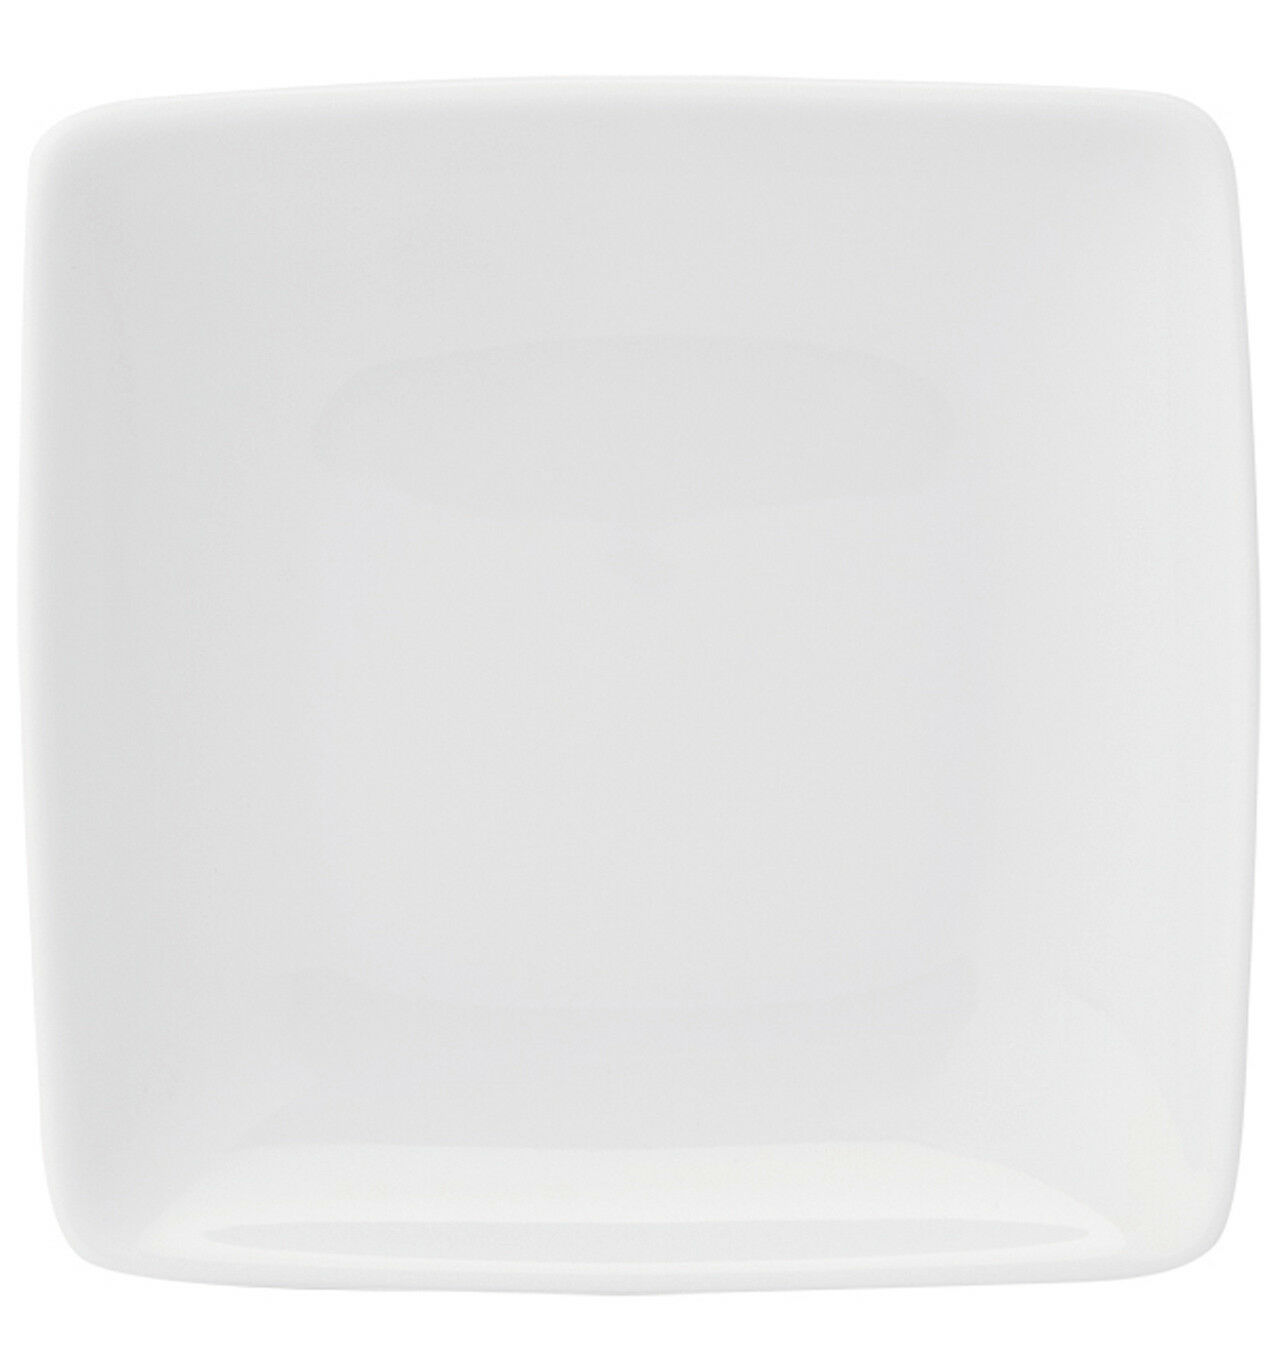 Vista Alegre Carré Weiß Charger Charger Charger Plate - Set of 12 18f14c